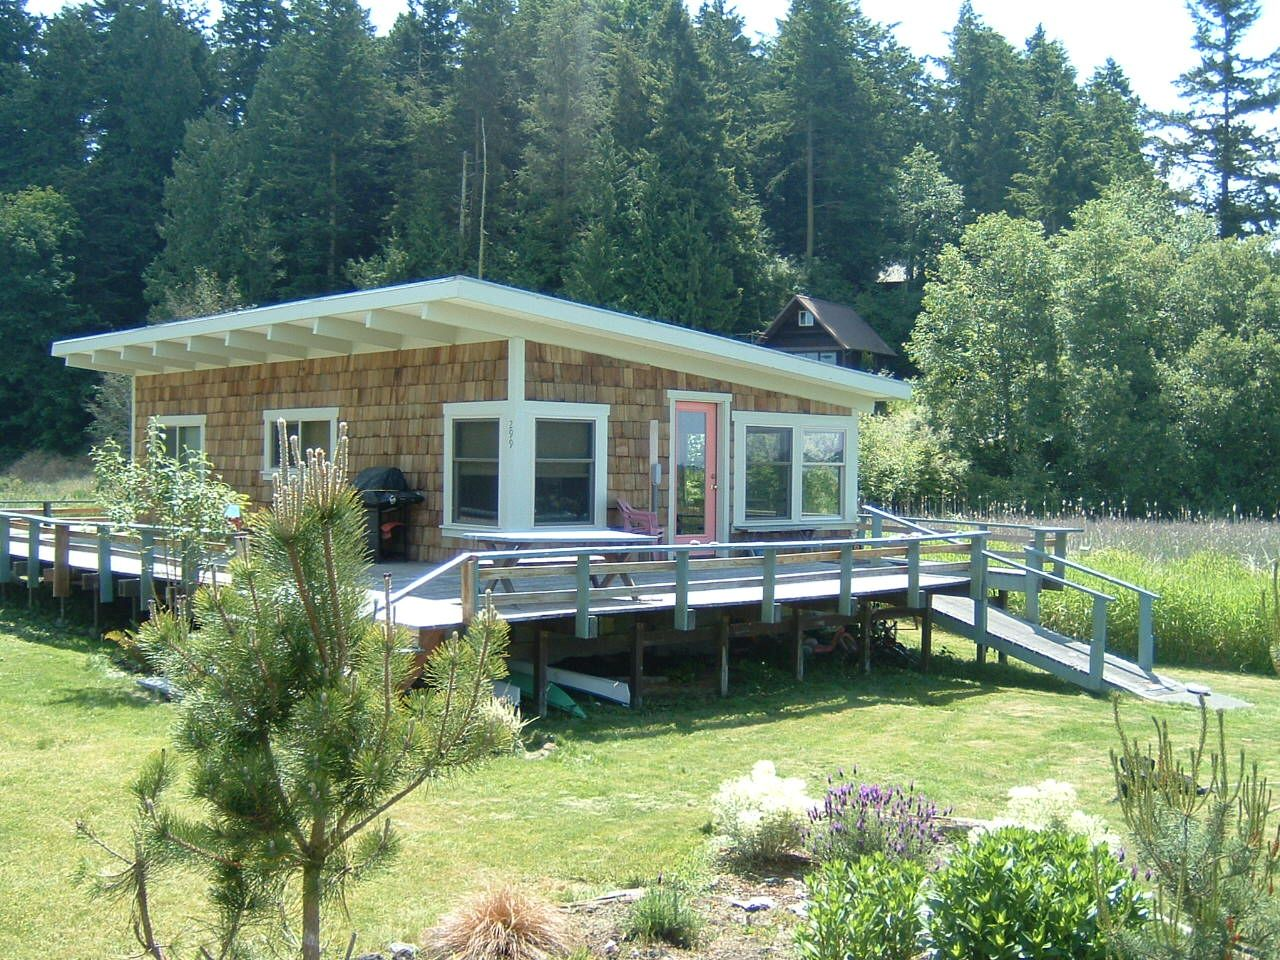 Beach Cabin Google Search Beach Cabin Beach Cottage Decor Cabins And Cottages